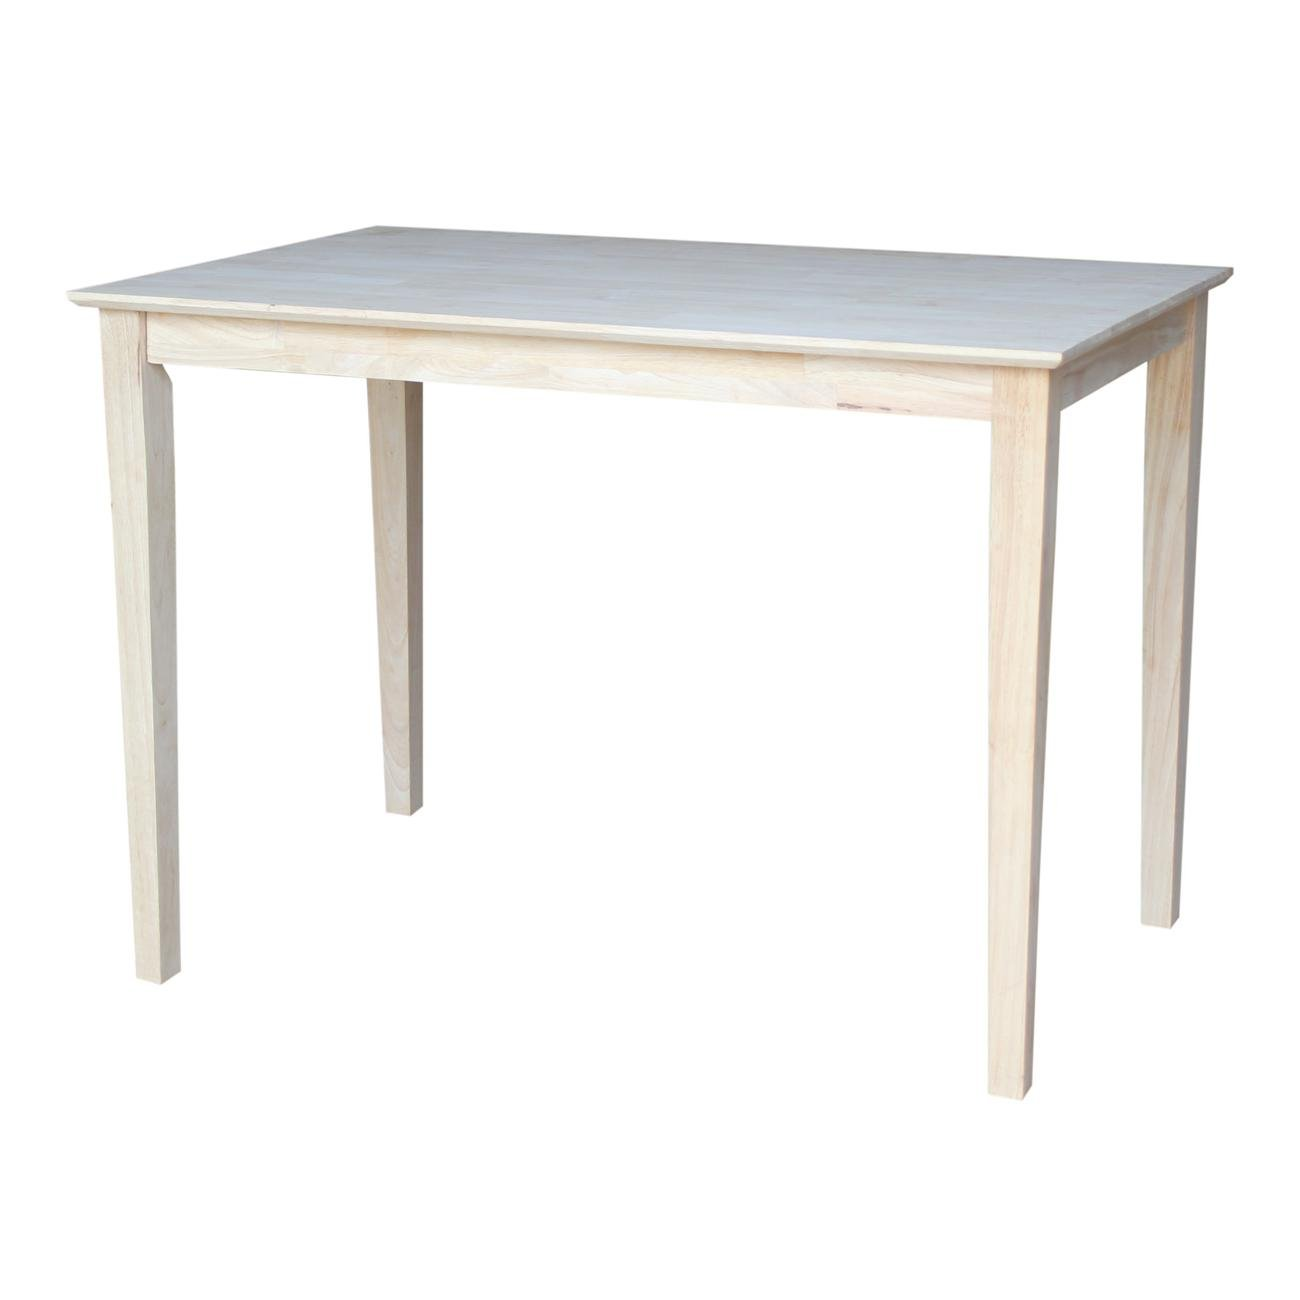 International Concepts K-3048-36S Solid Wood Top Dining Table, 30 x 48, Unfinished